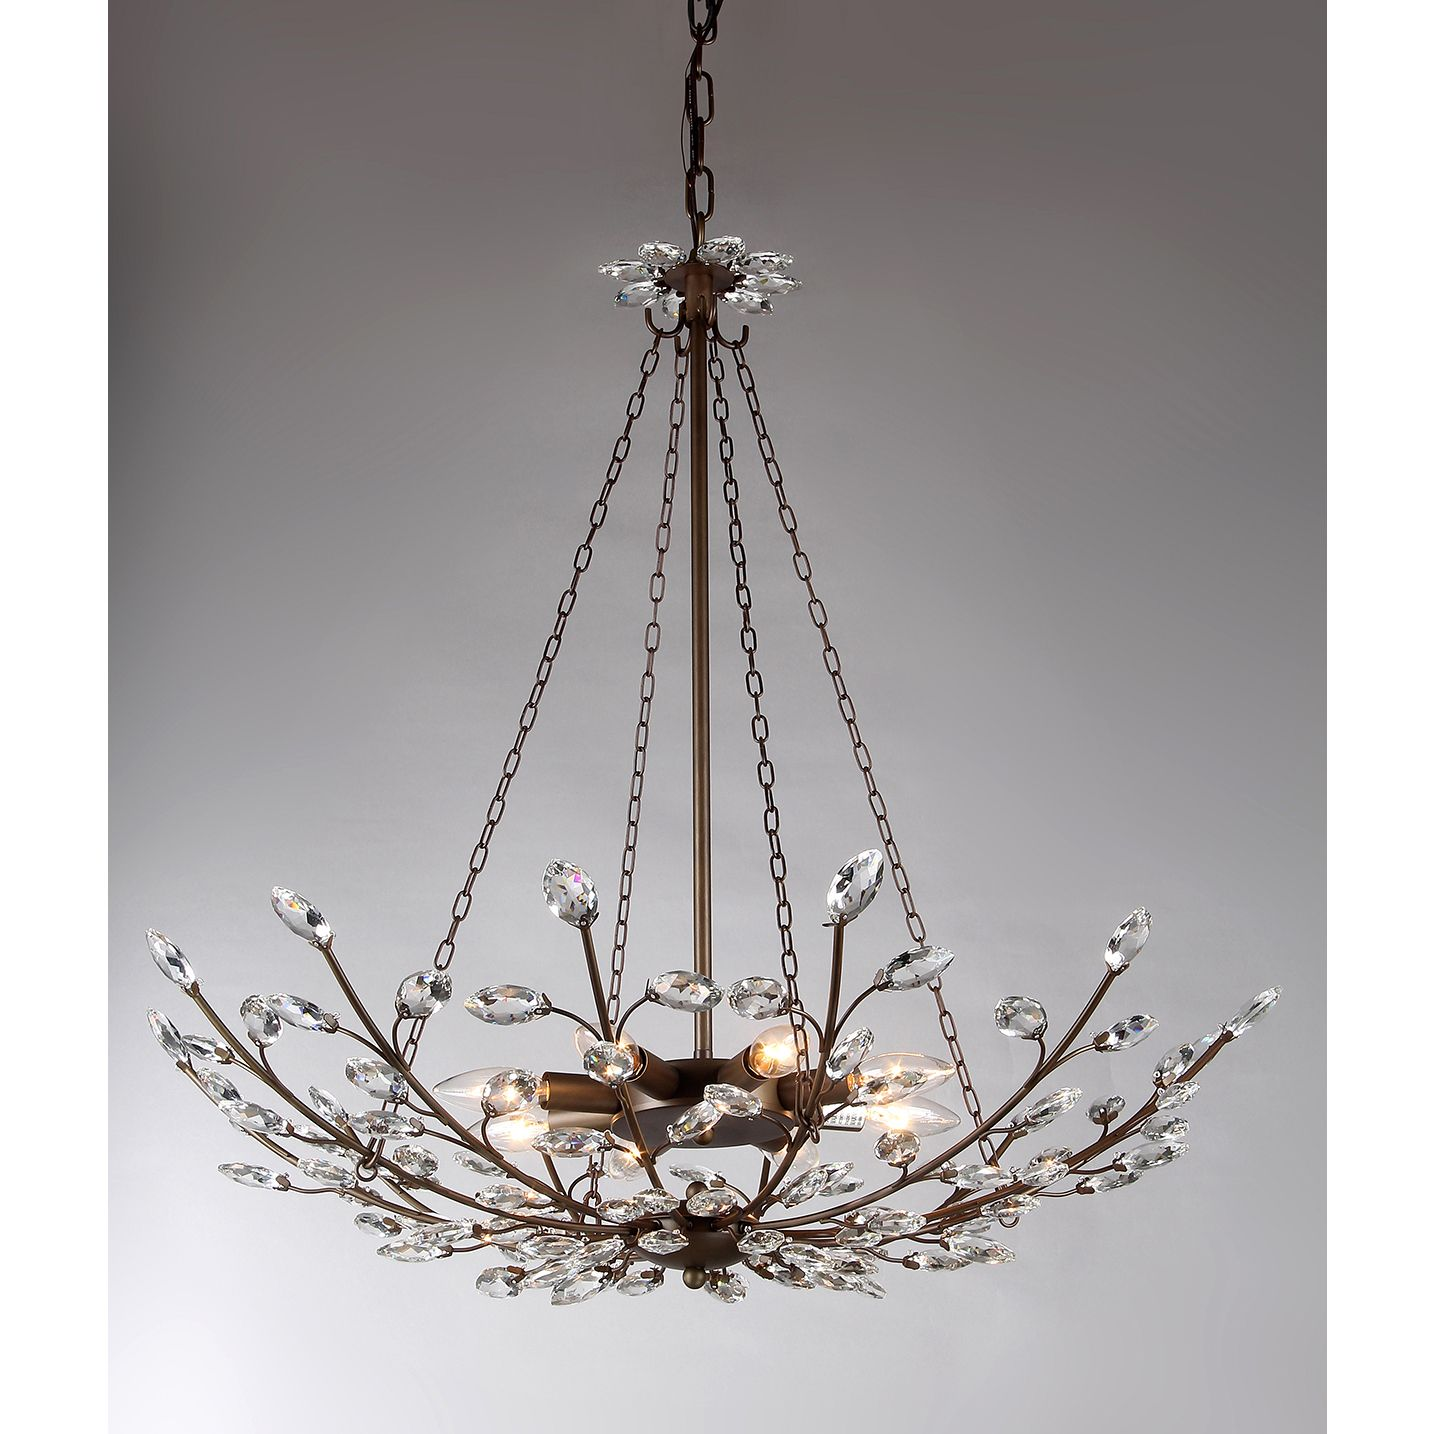 This chandelier features a stunningly beautiful design